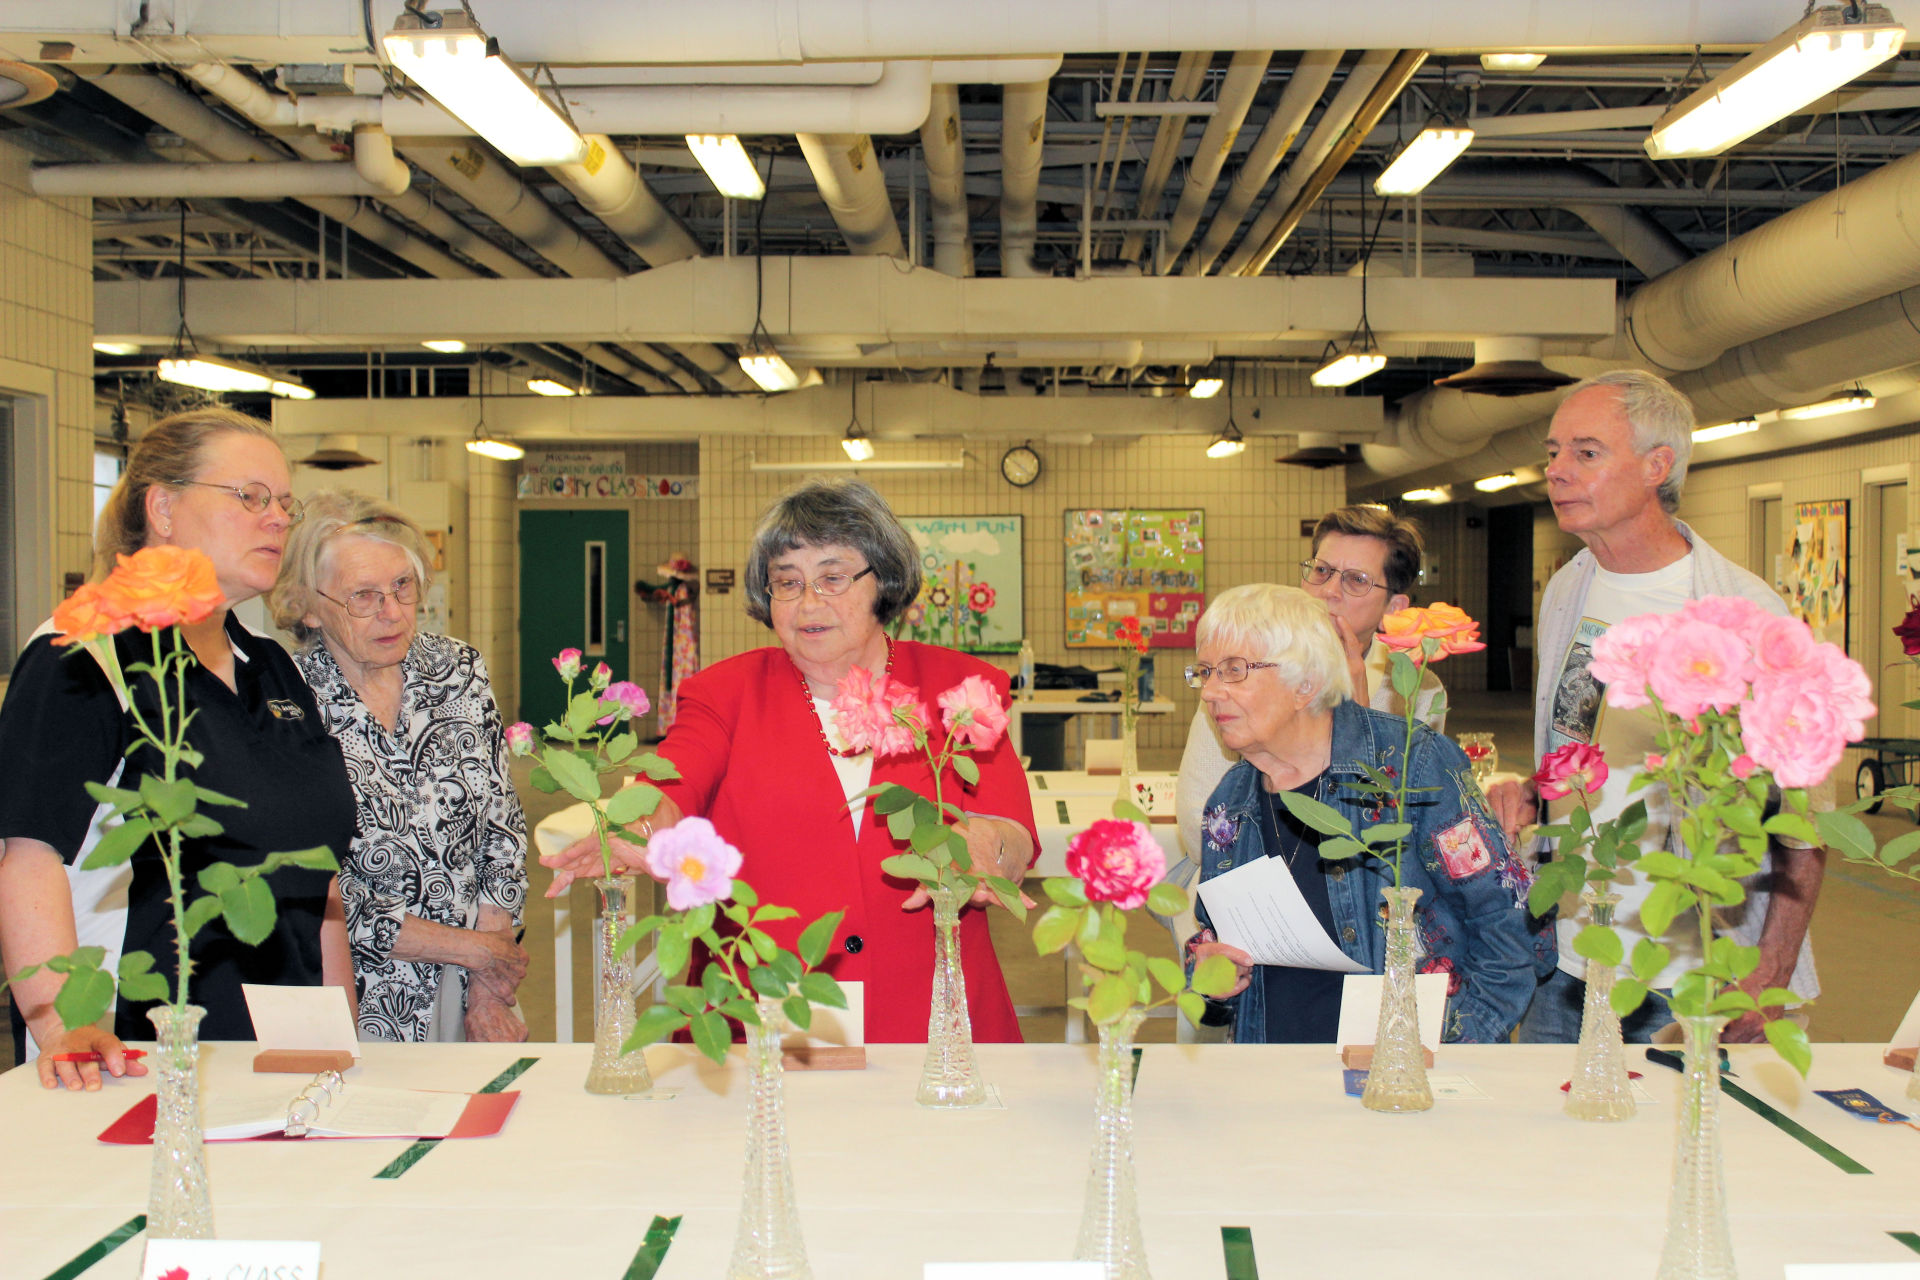 Judge Rose Enders instructs attendees about judging roses